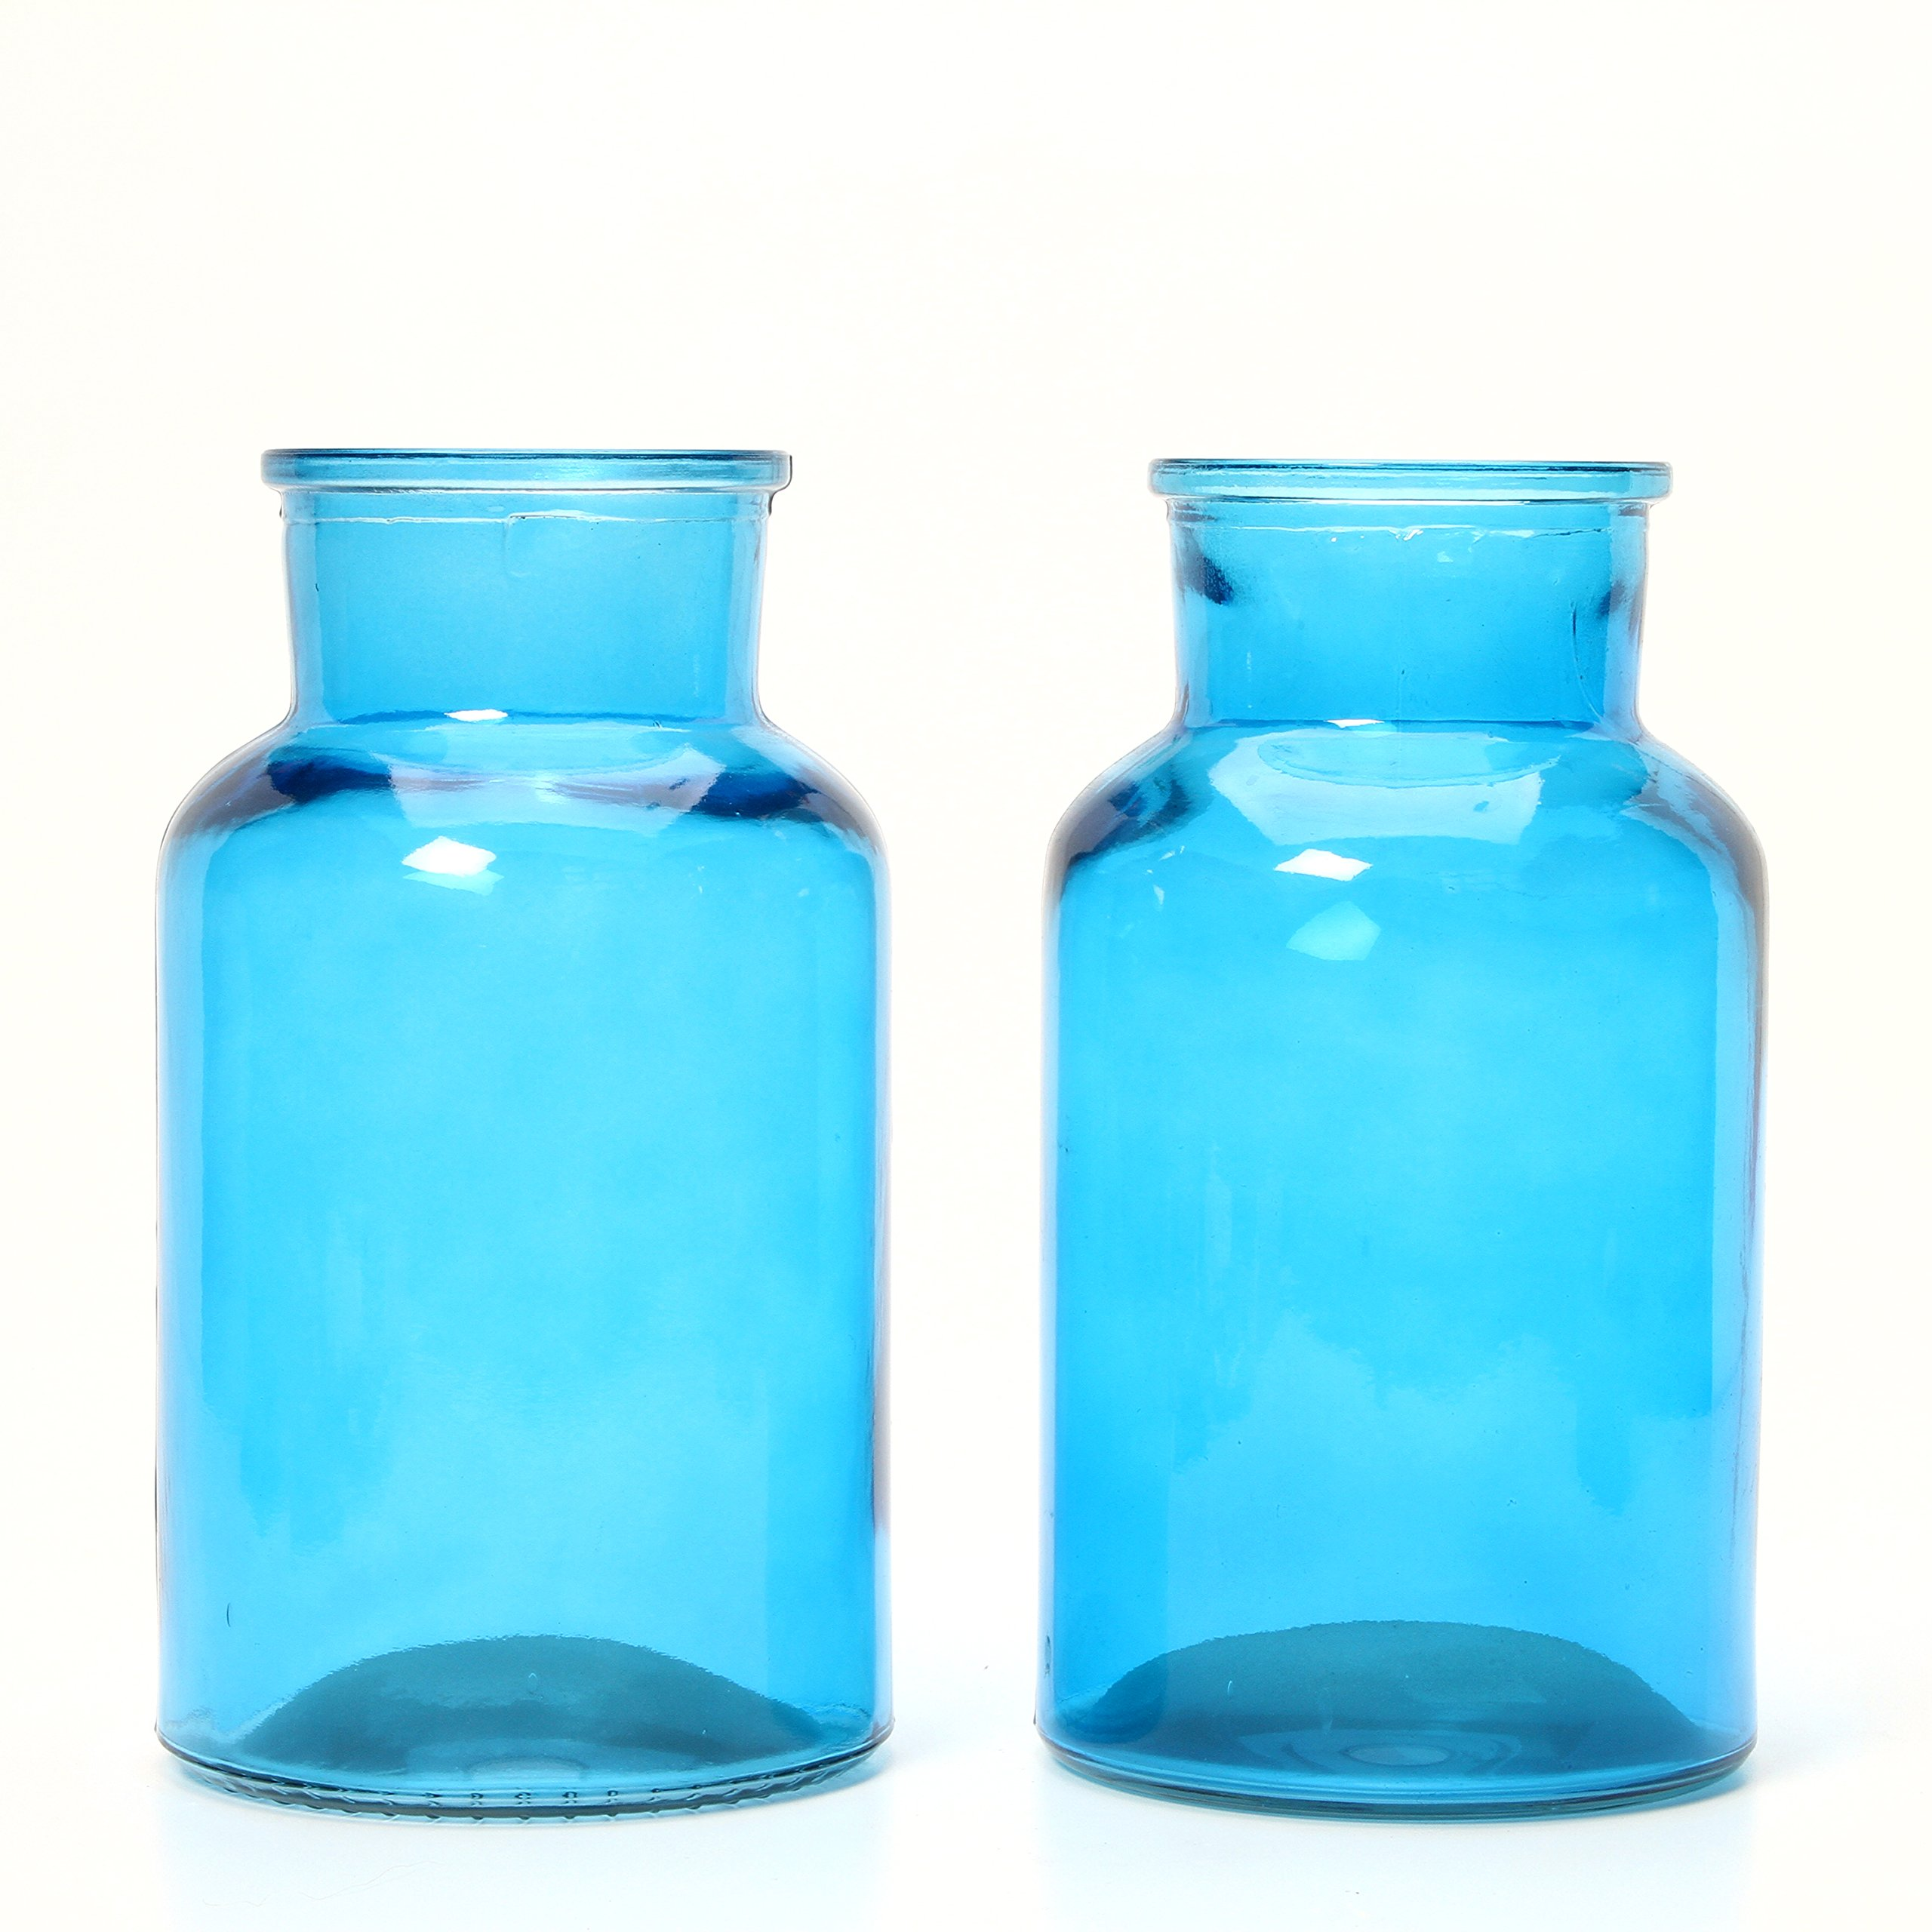 Hosley's Set of 2 Blue Glass Vases - 10'' High. Ideal Gift for Special Occasion; for Spa, Nautical, Family room, Restaurant, Storage, Votive Candle Gardens O7